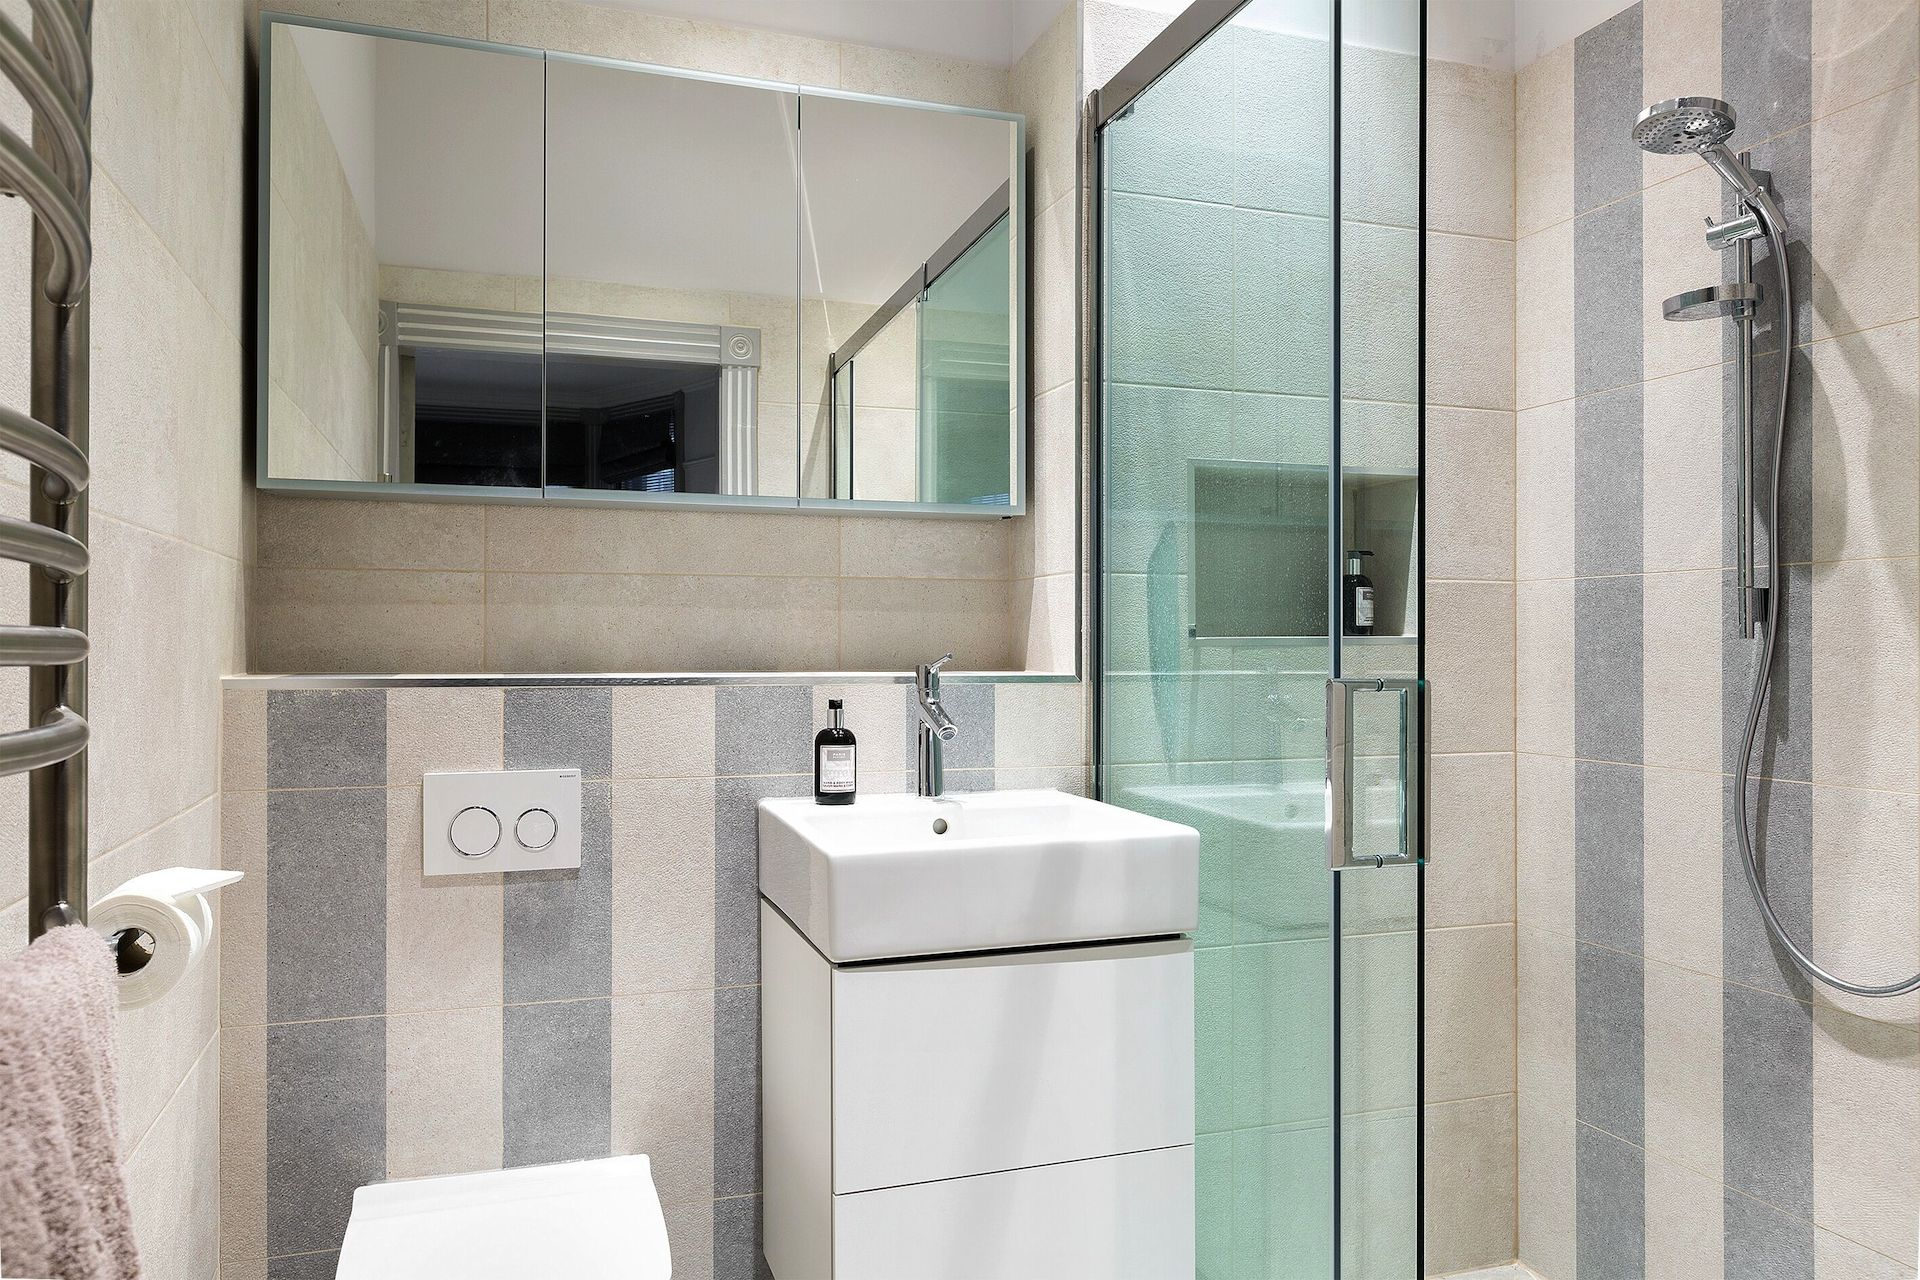 Private en suite in the Coleherne vacation rental offered by London Perfect